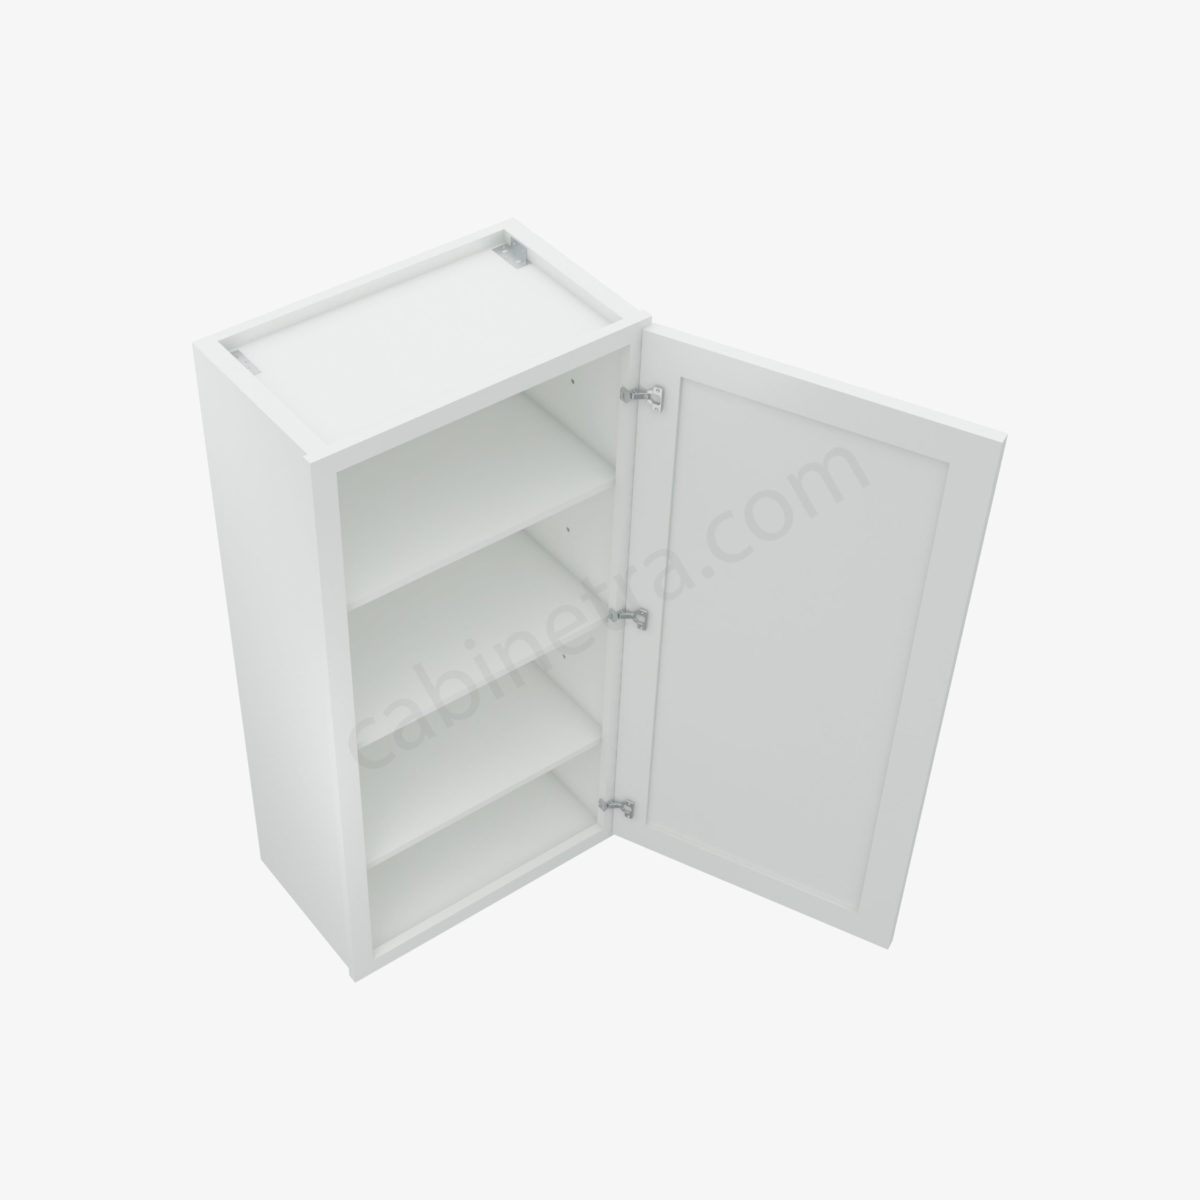 TW W2142 2 Forevermark Uptown White Cabinetra scaled